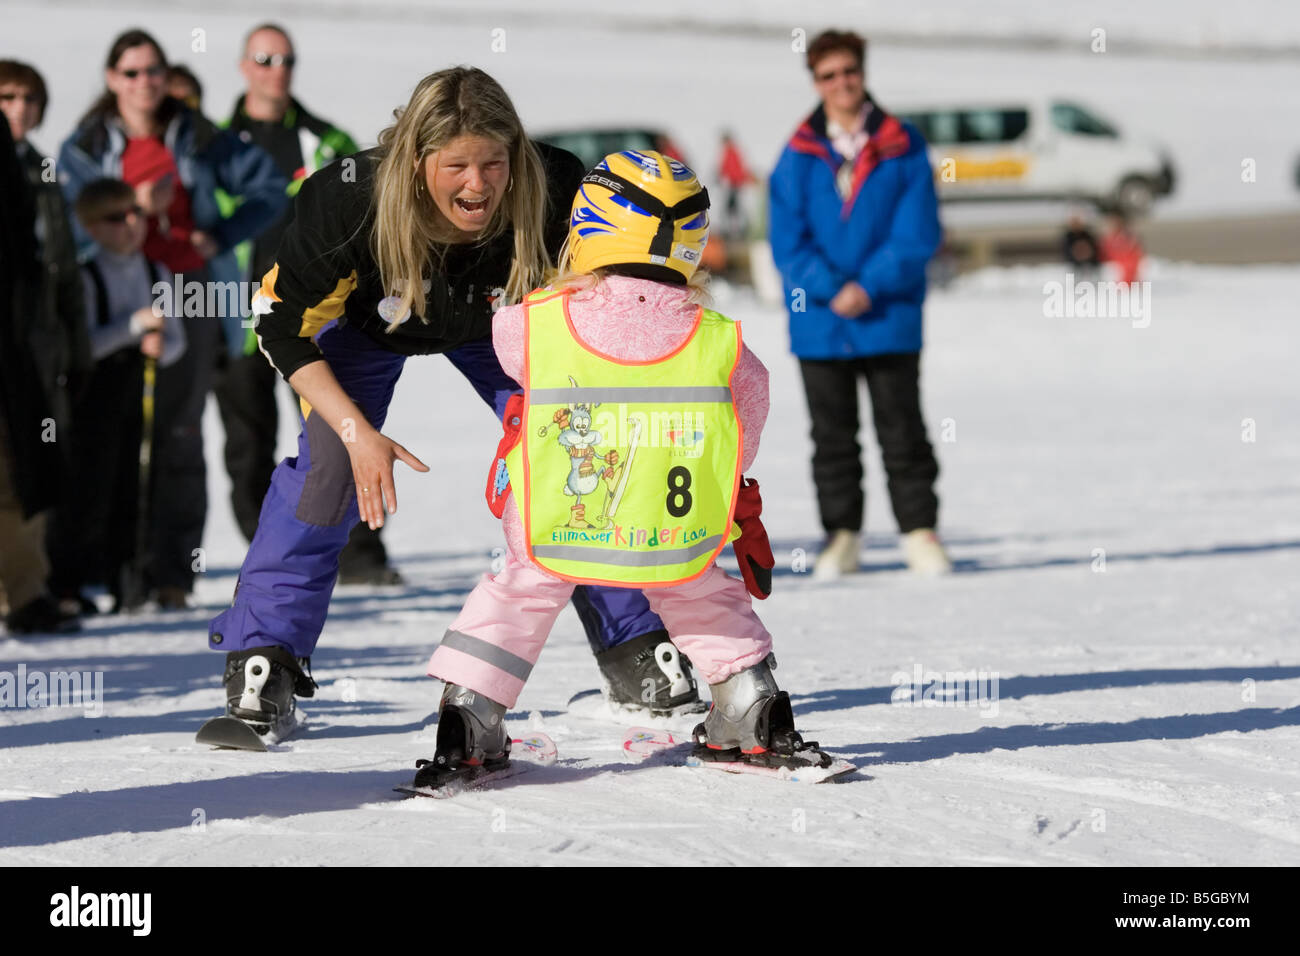 Ski instructor and young child in end of week ski race - Stock Image